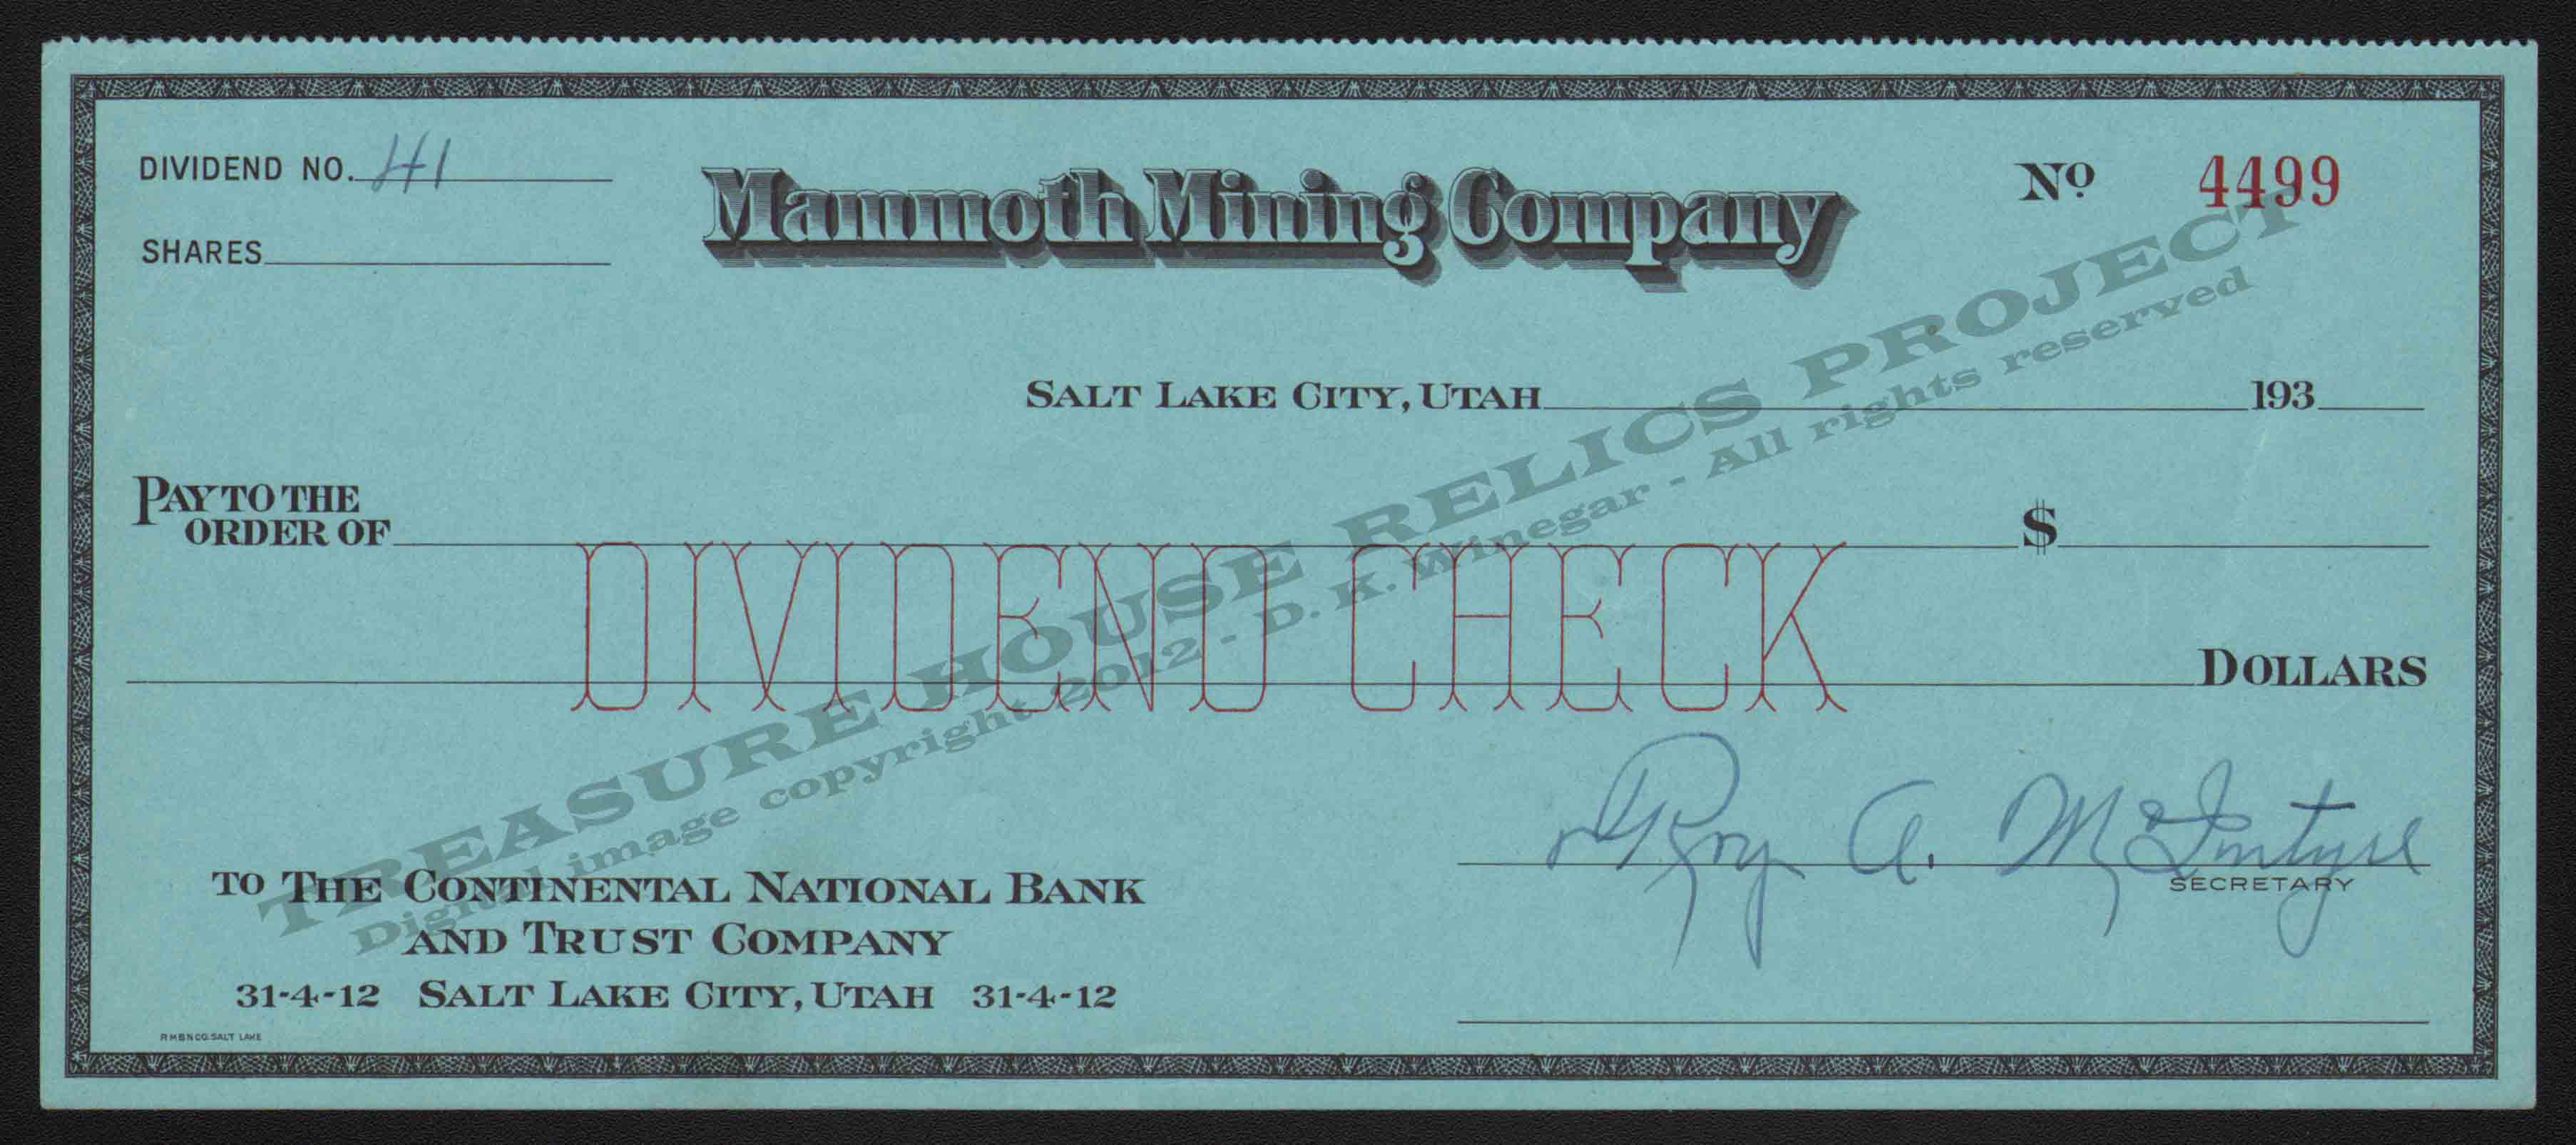 LETTERHEAD/CHECK_MAMMOTH_MINING_COMPANY_DIVIDEND_41_4499_193X_GP_400_CROP_EMBOSS.jpg